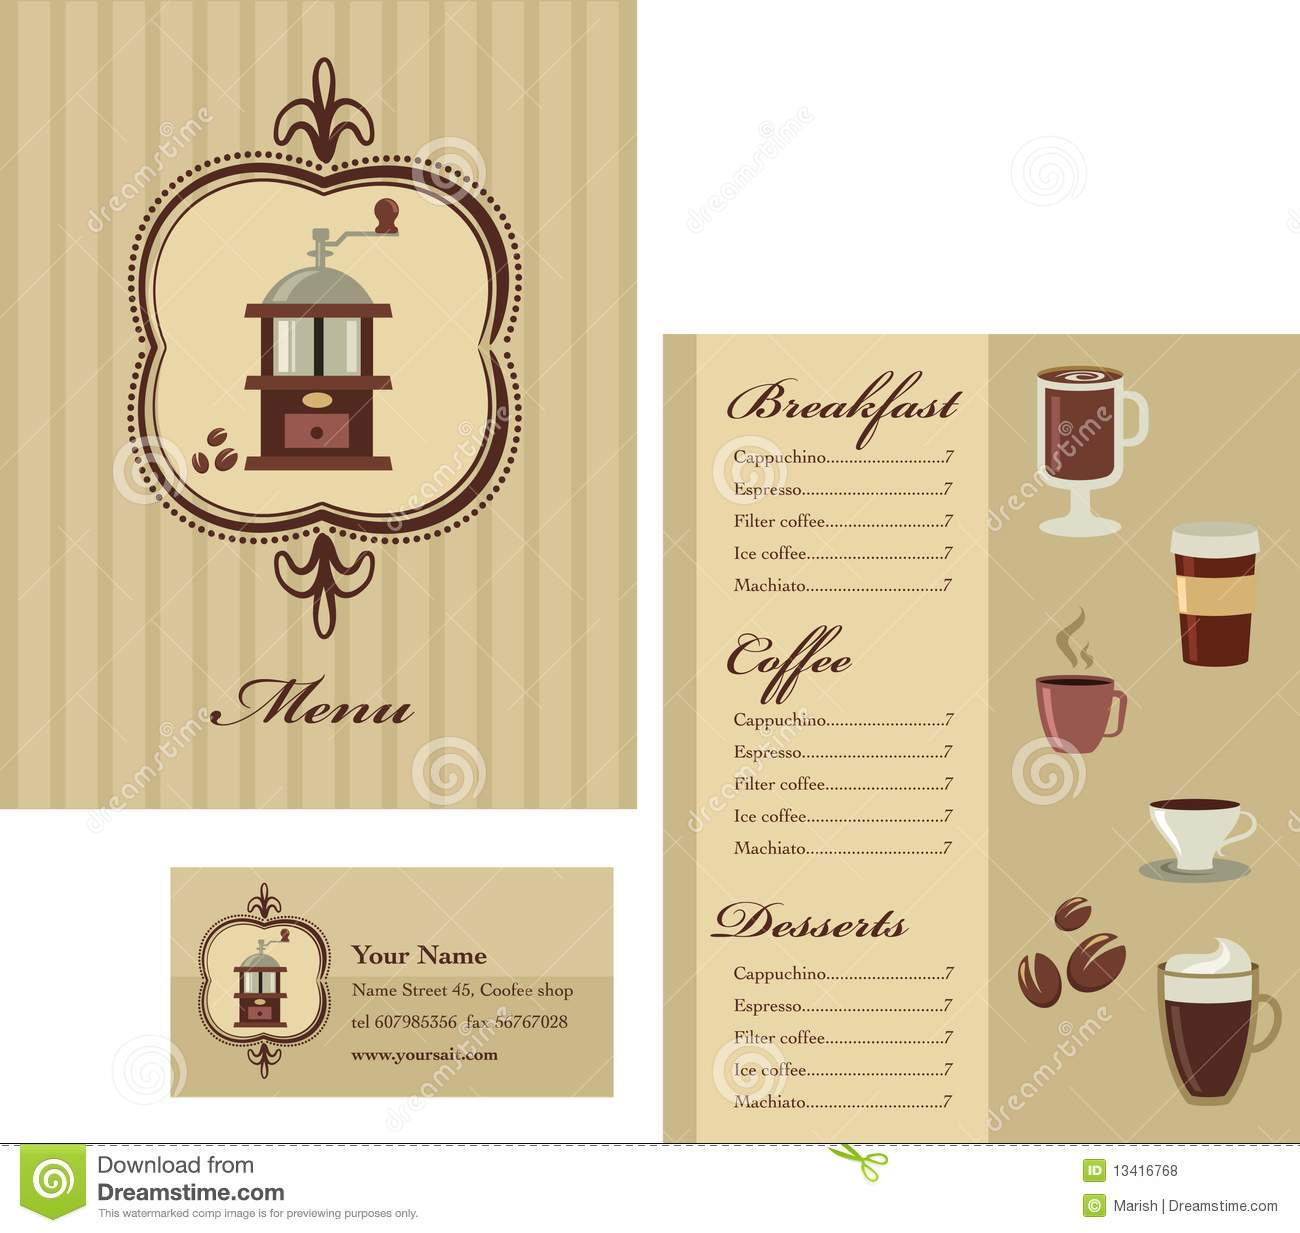 Coffee business card template stock vector illustration of menu and business card template design coffee royalty free illustration wajeb